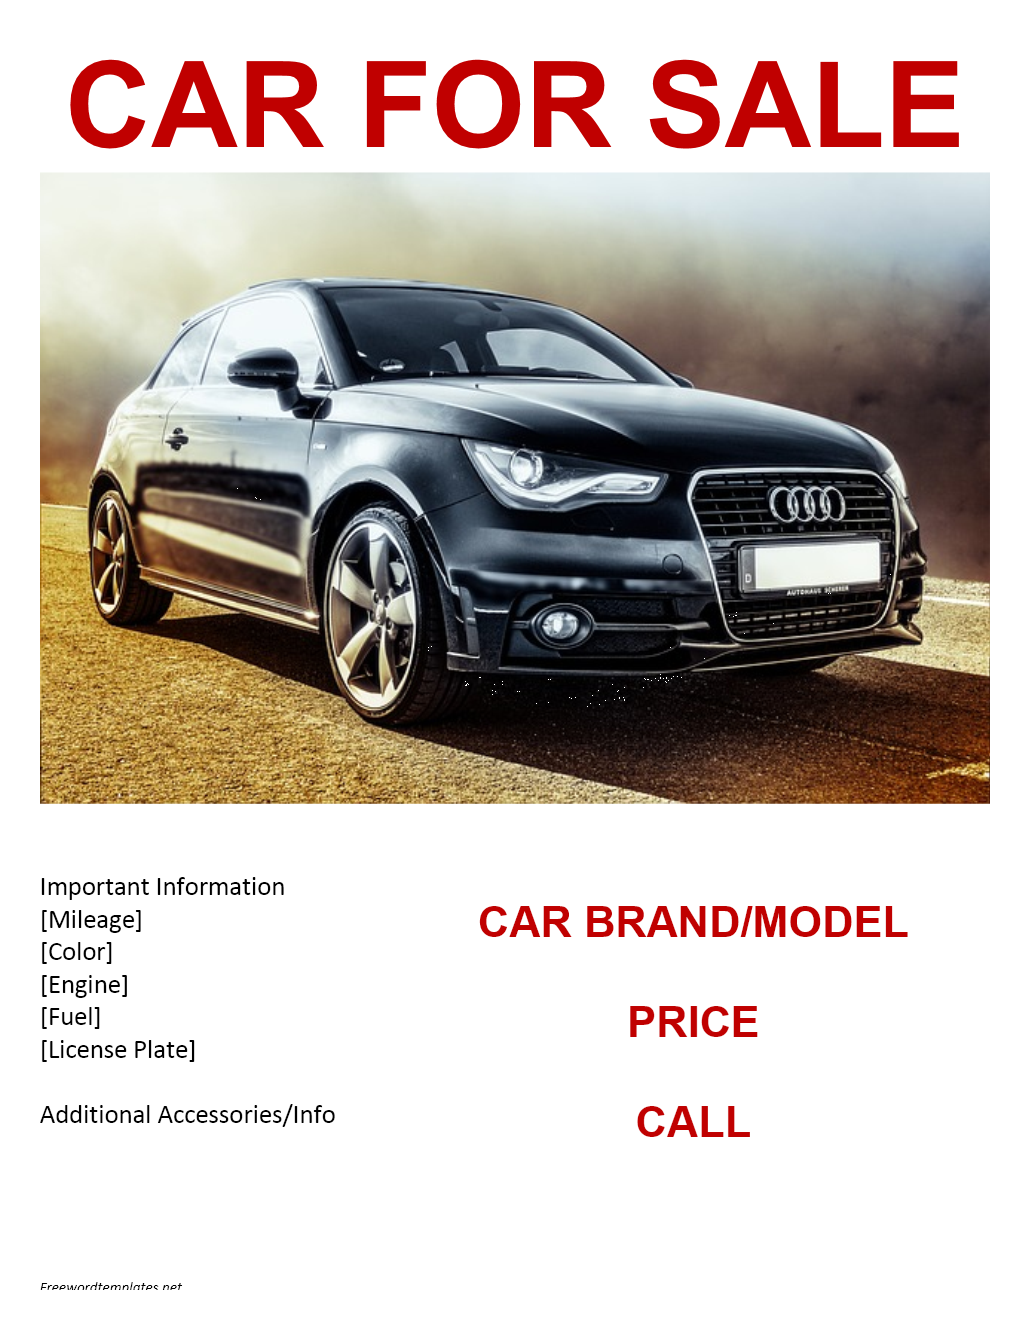 Car for Sale Flyer Template – Car for Sale Flyer